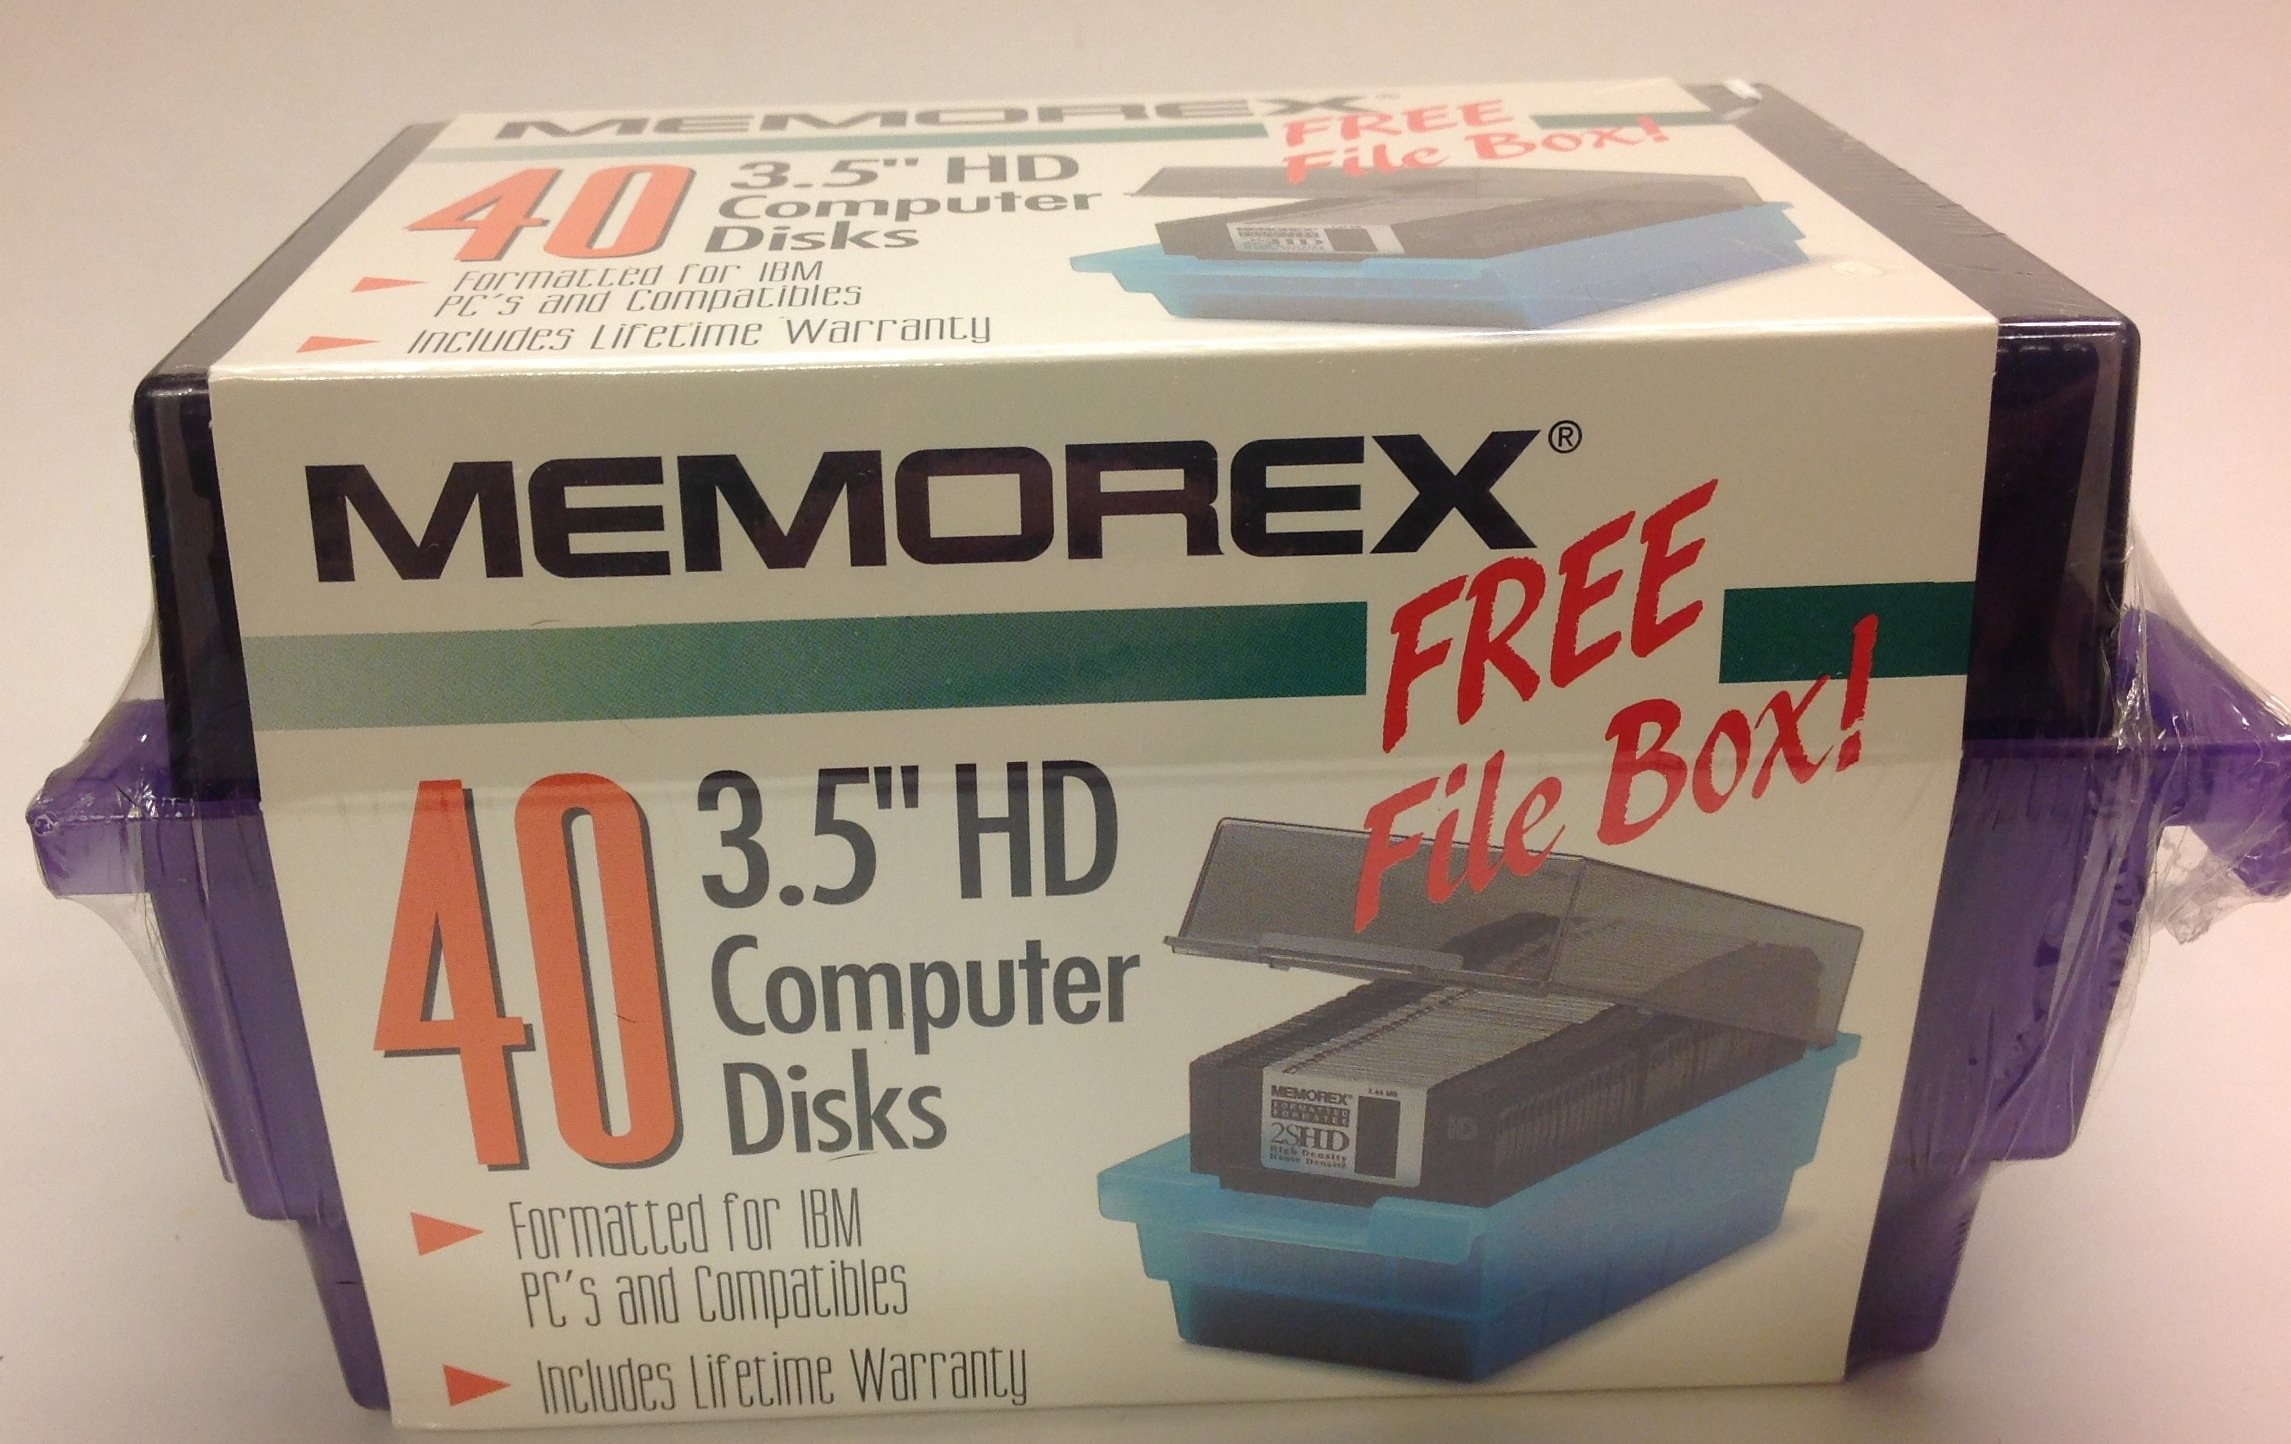 Memorex 3.5 Inch High Density 2SHD Computer Disks Formatted for IBM PCs and Compatibles With File Box (40)